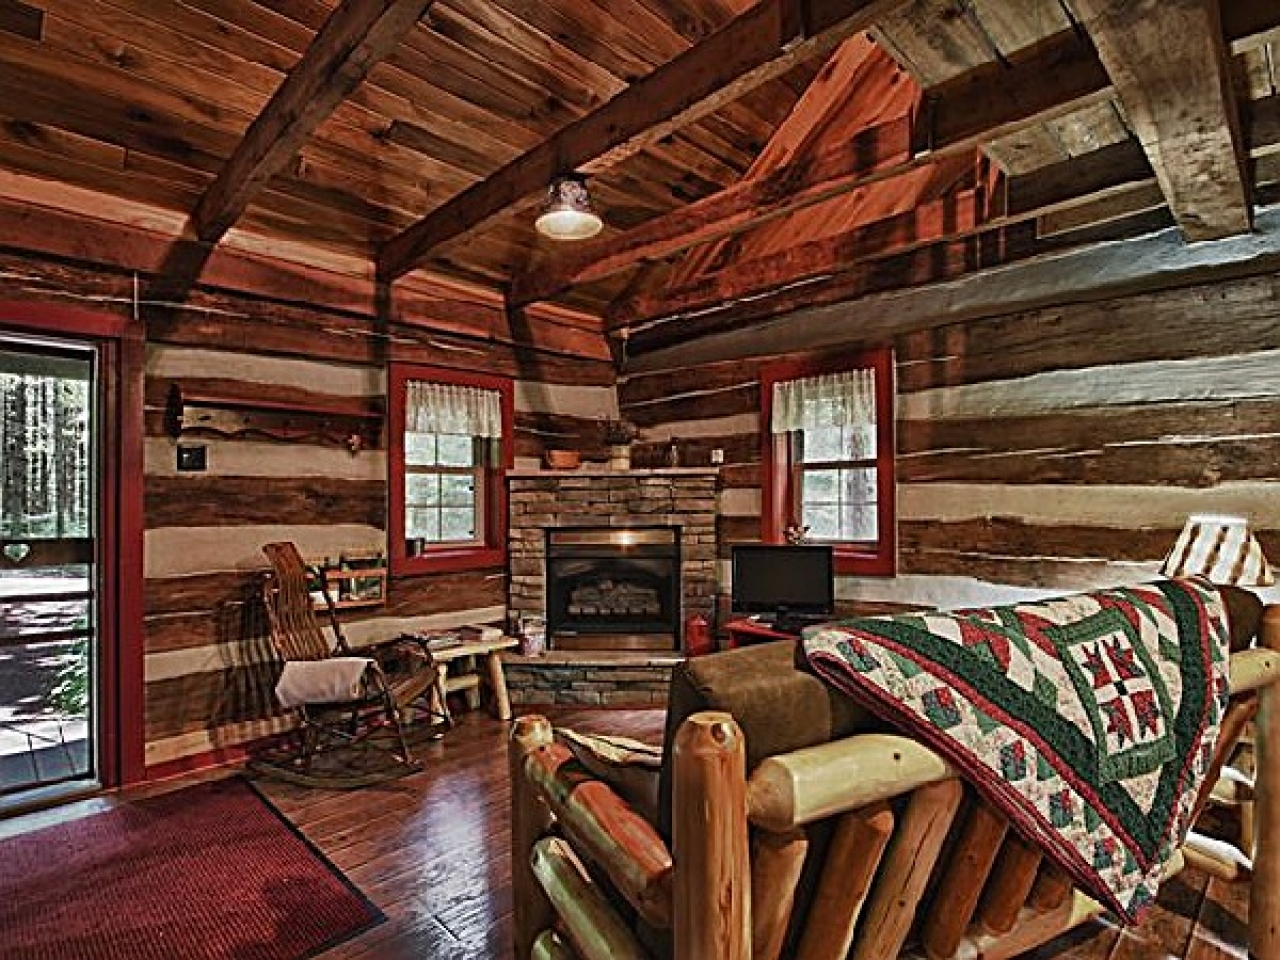 Log cabin log cabin in the woods 2 bed log cabins - The wood cabin on the rocks ...